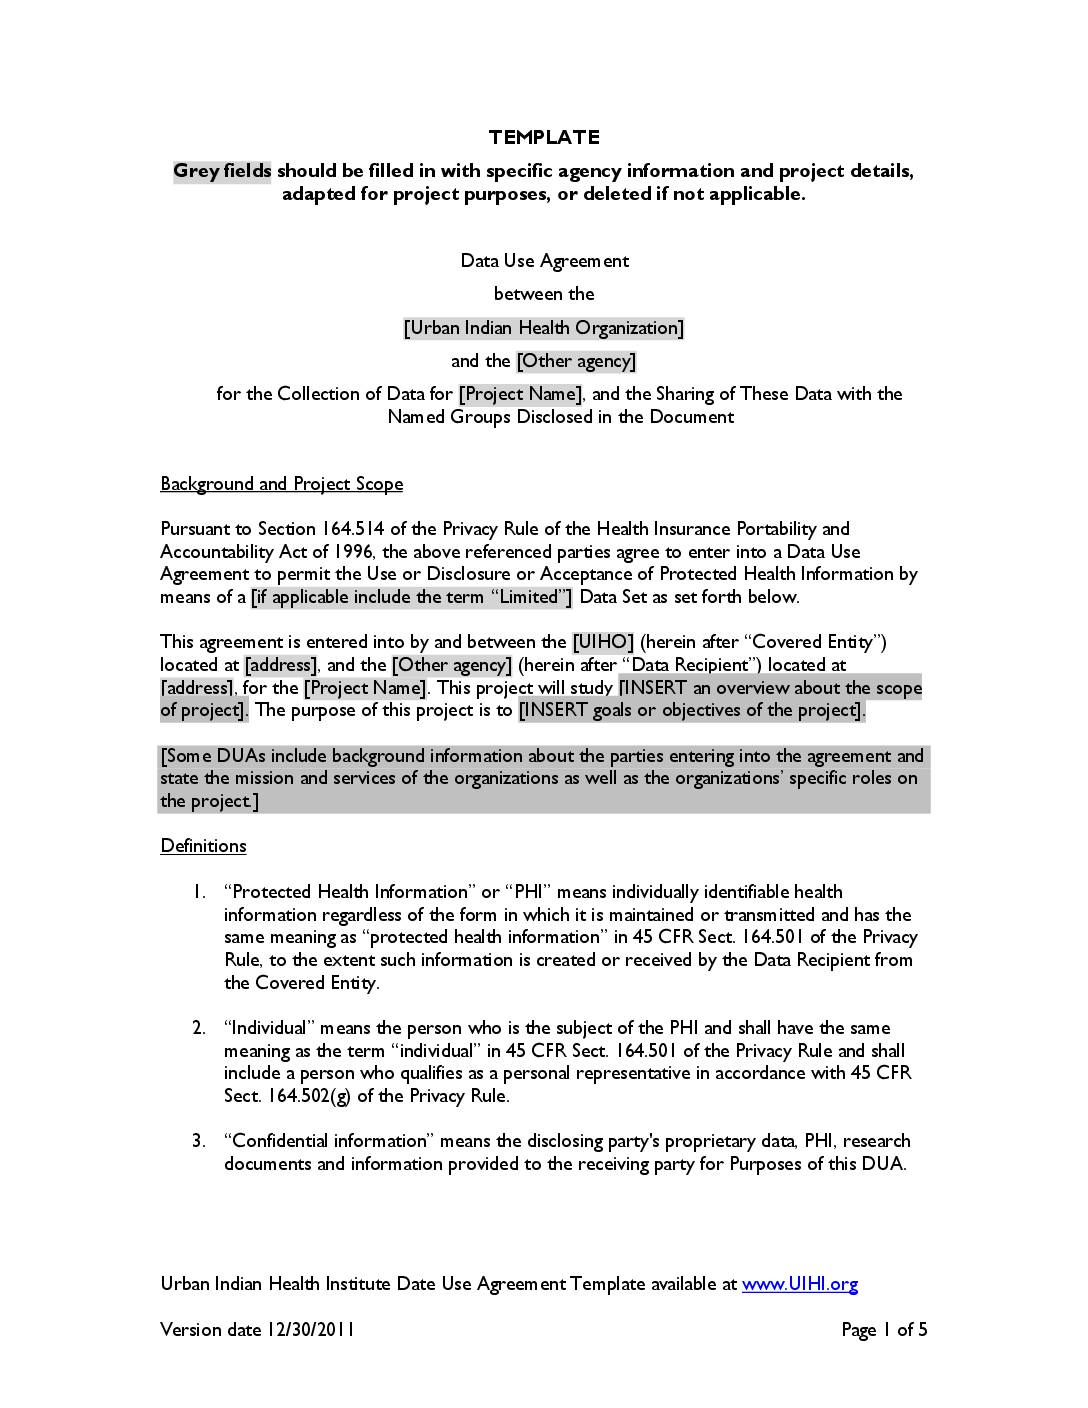 Data Use Agreement Template The Urban Indian Health Institute